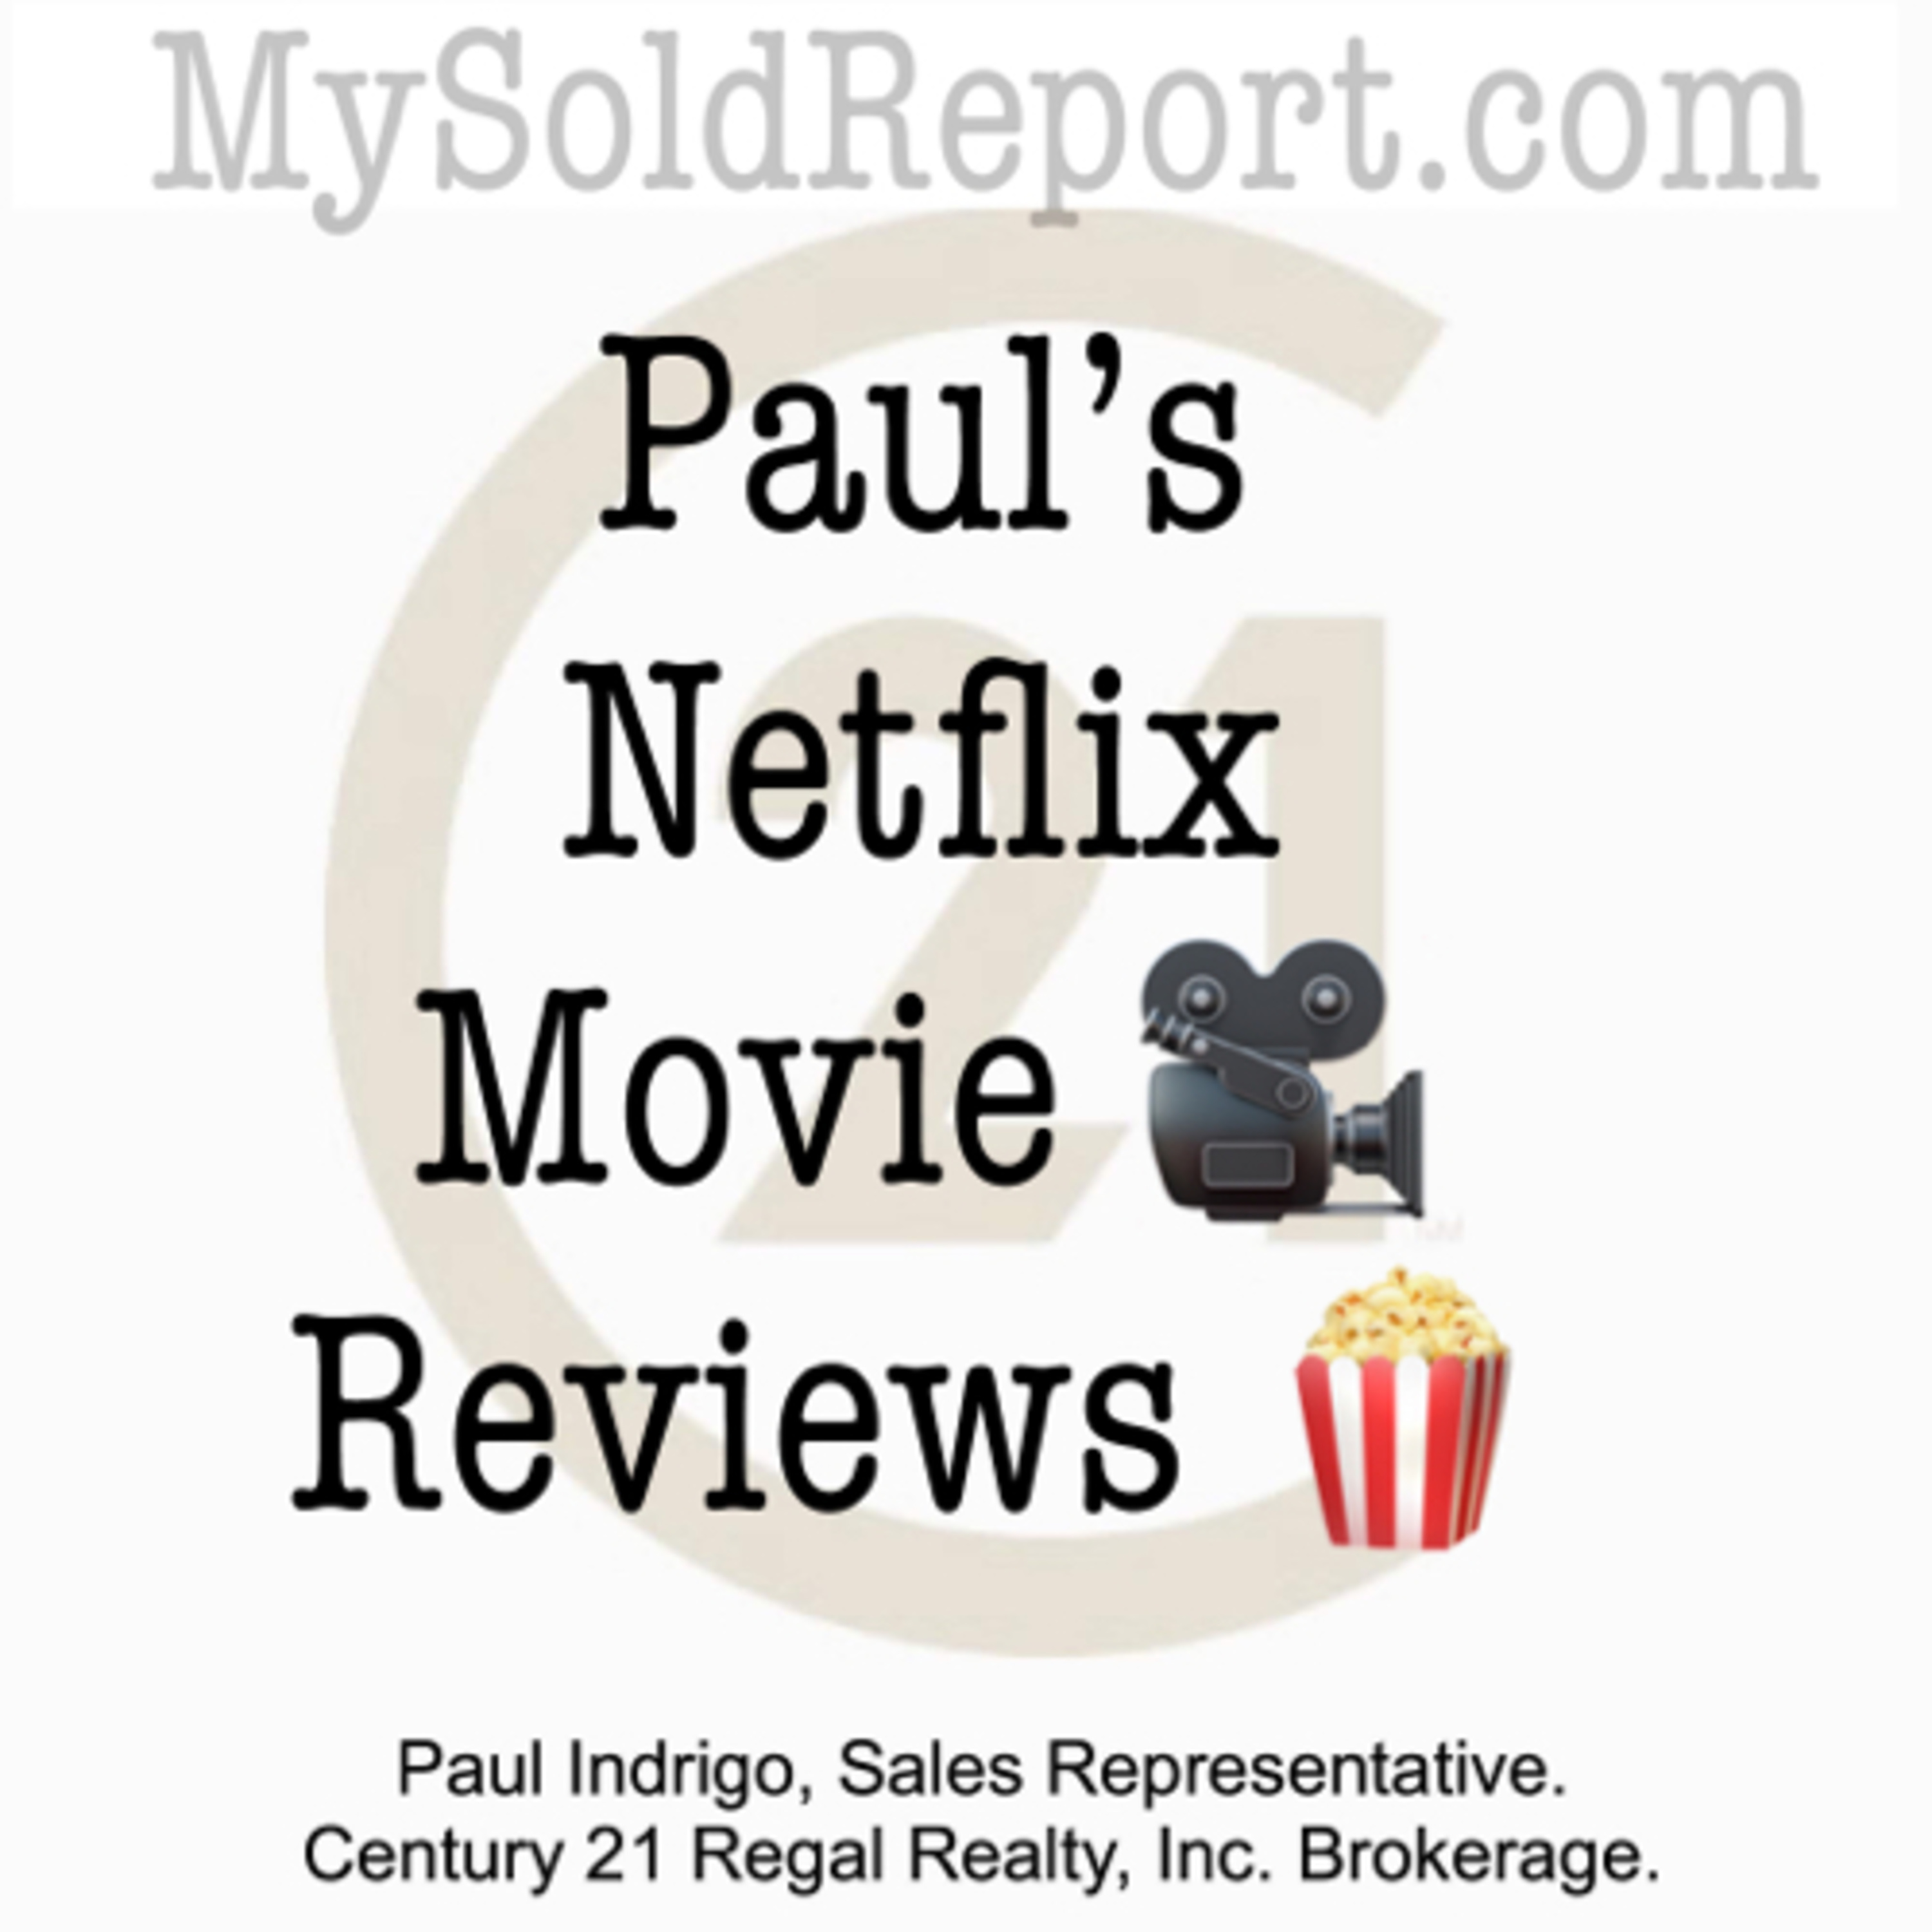 Paul's Netflix Movie Reviews: Apollo 13